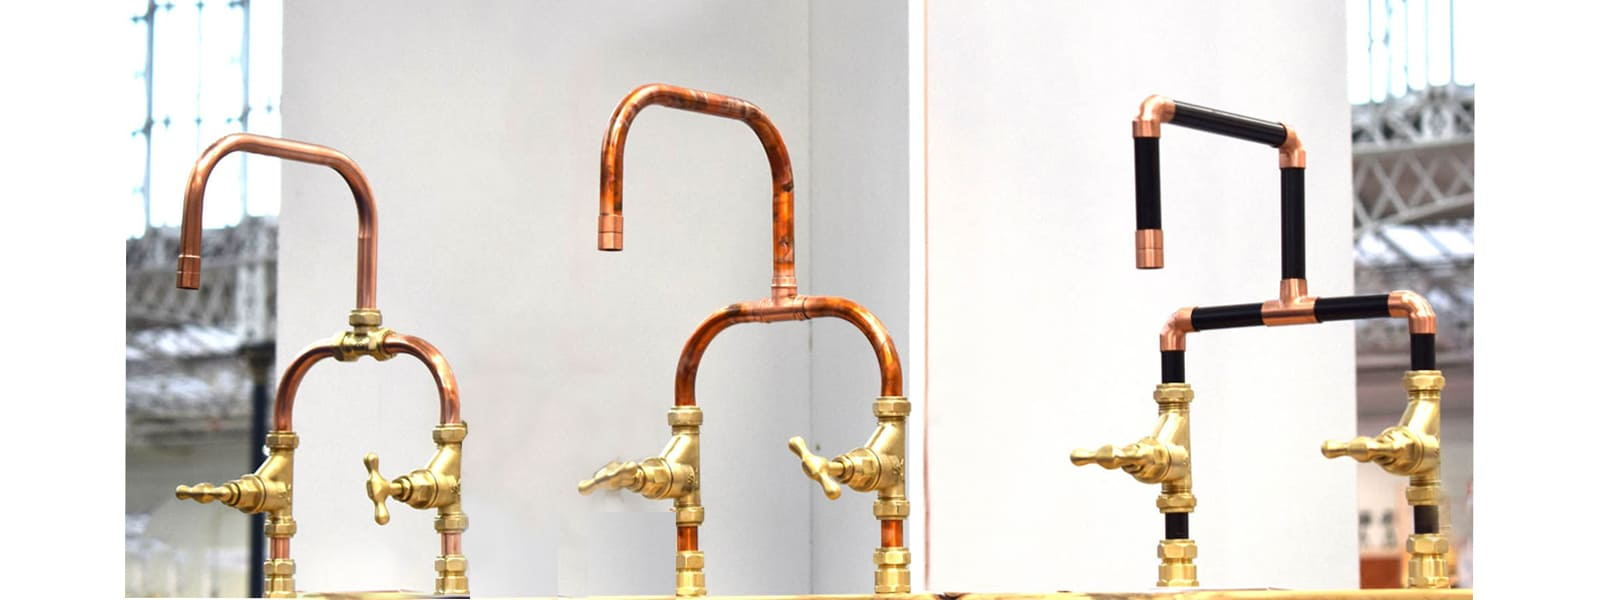 CopperTaps-multicolouredtaps-agedcoppertap-aboutus